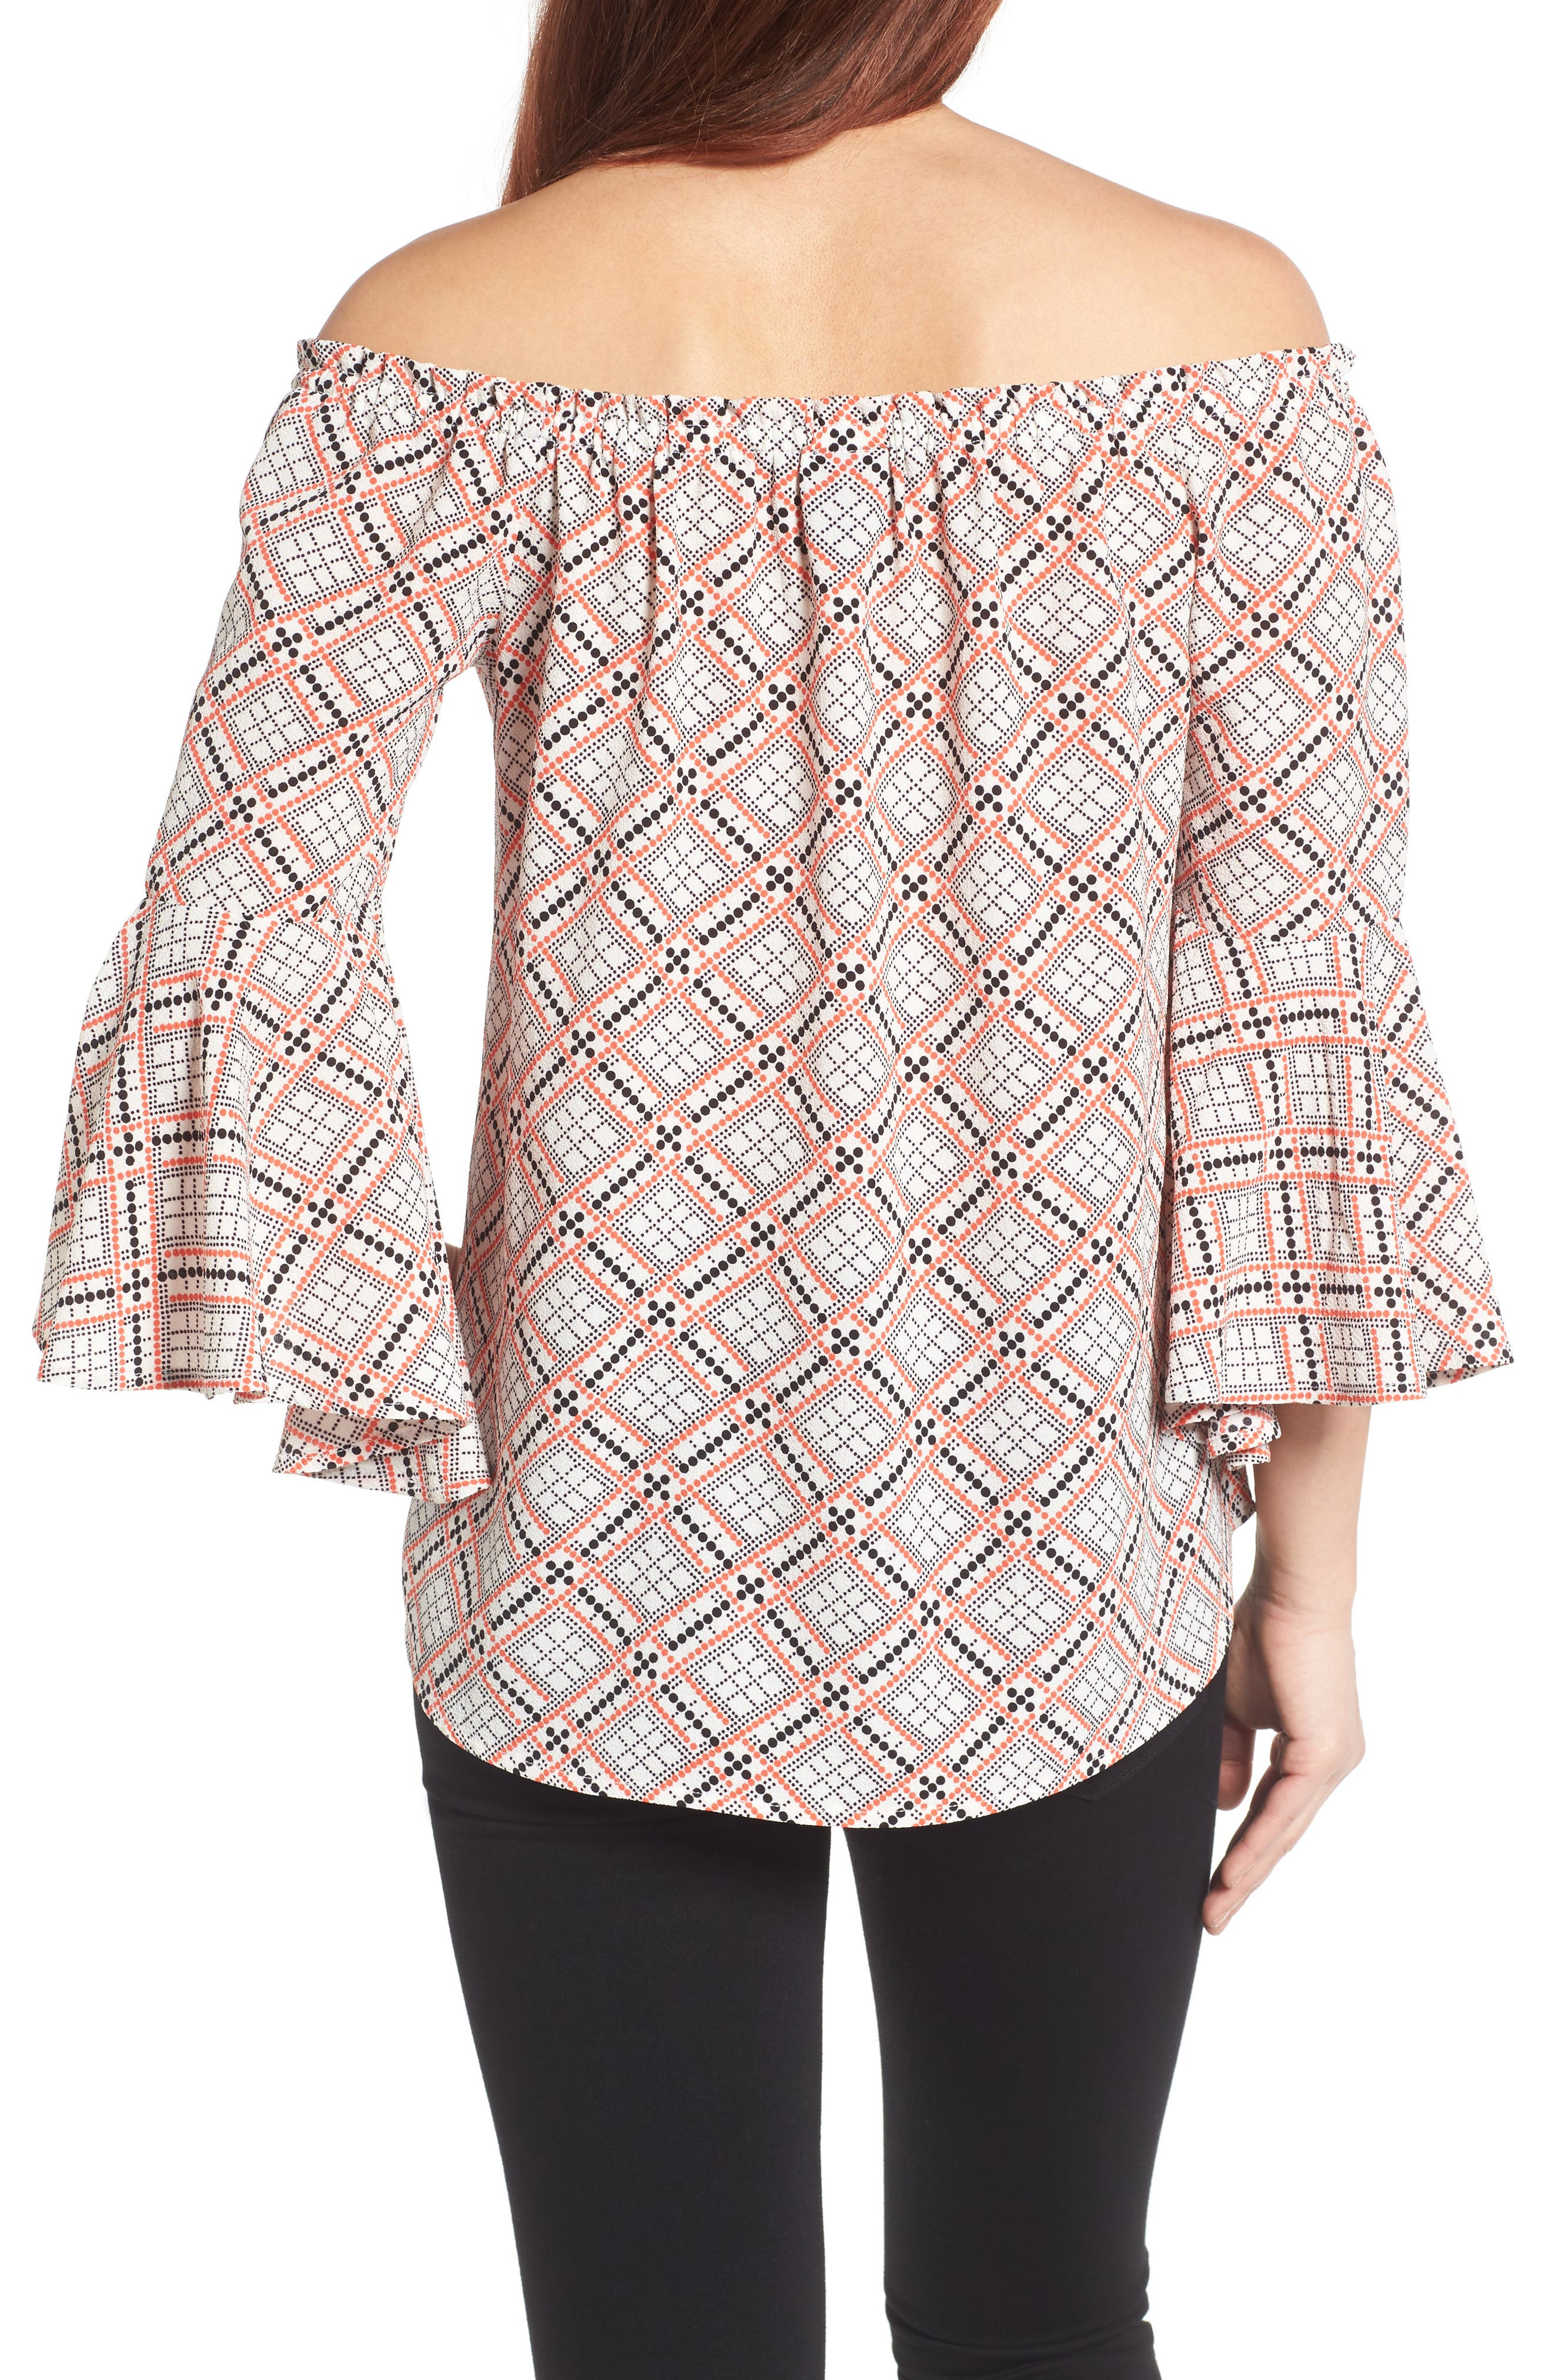 Bell Sleeve Off the Shoulder Blouse,                             Alternate thumbnail 2, color,                             115